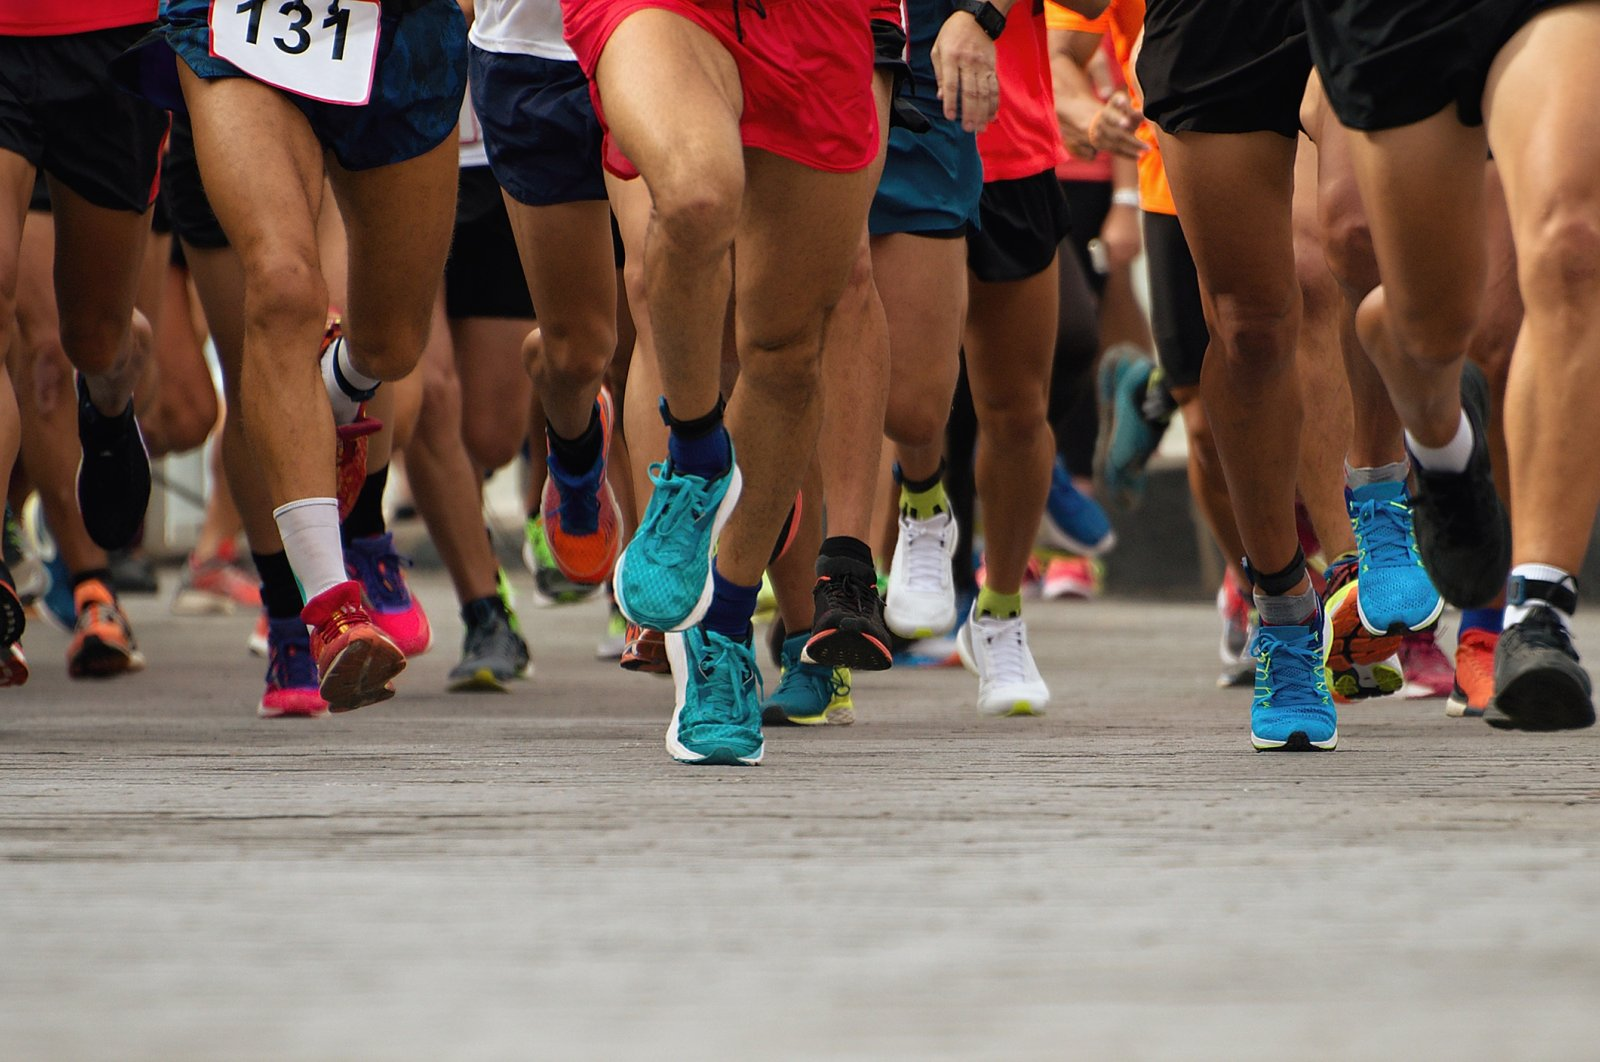 Preparing for a marathon is hard work, but the feeling of accomplishment is reward enough. (Shutterstock Photo)